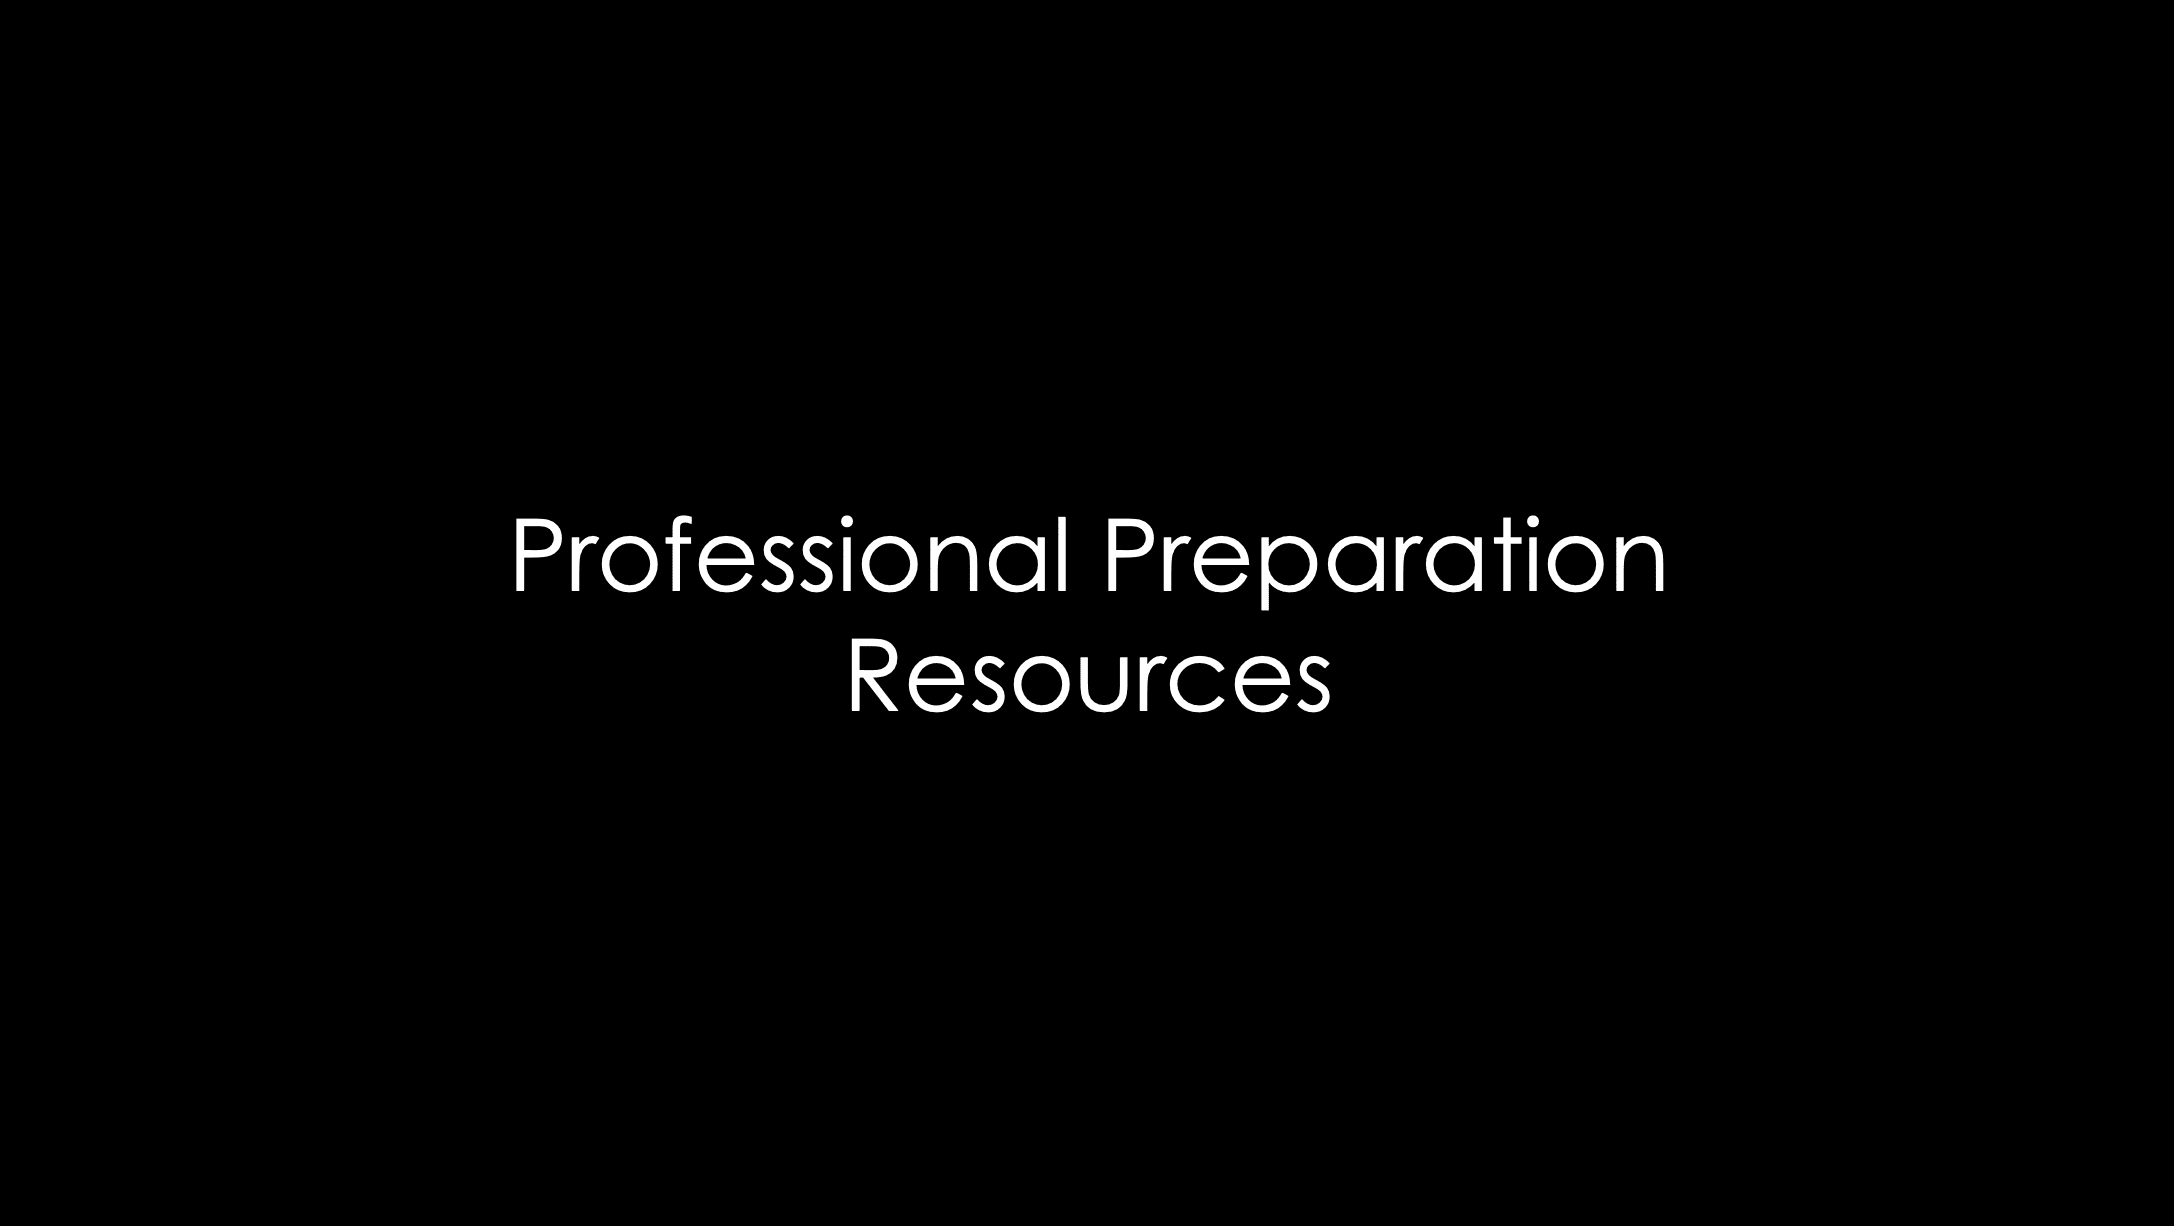 tests-preparation-resources-fire-and-rescue-nsw